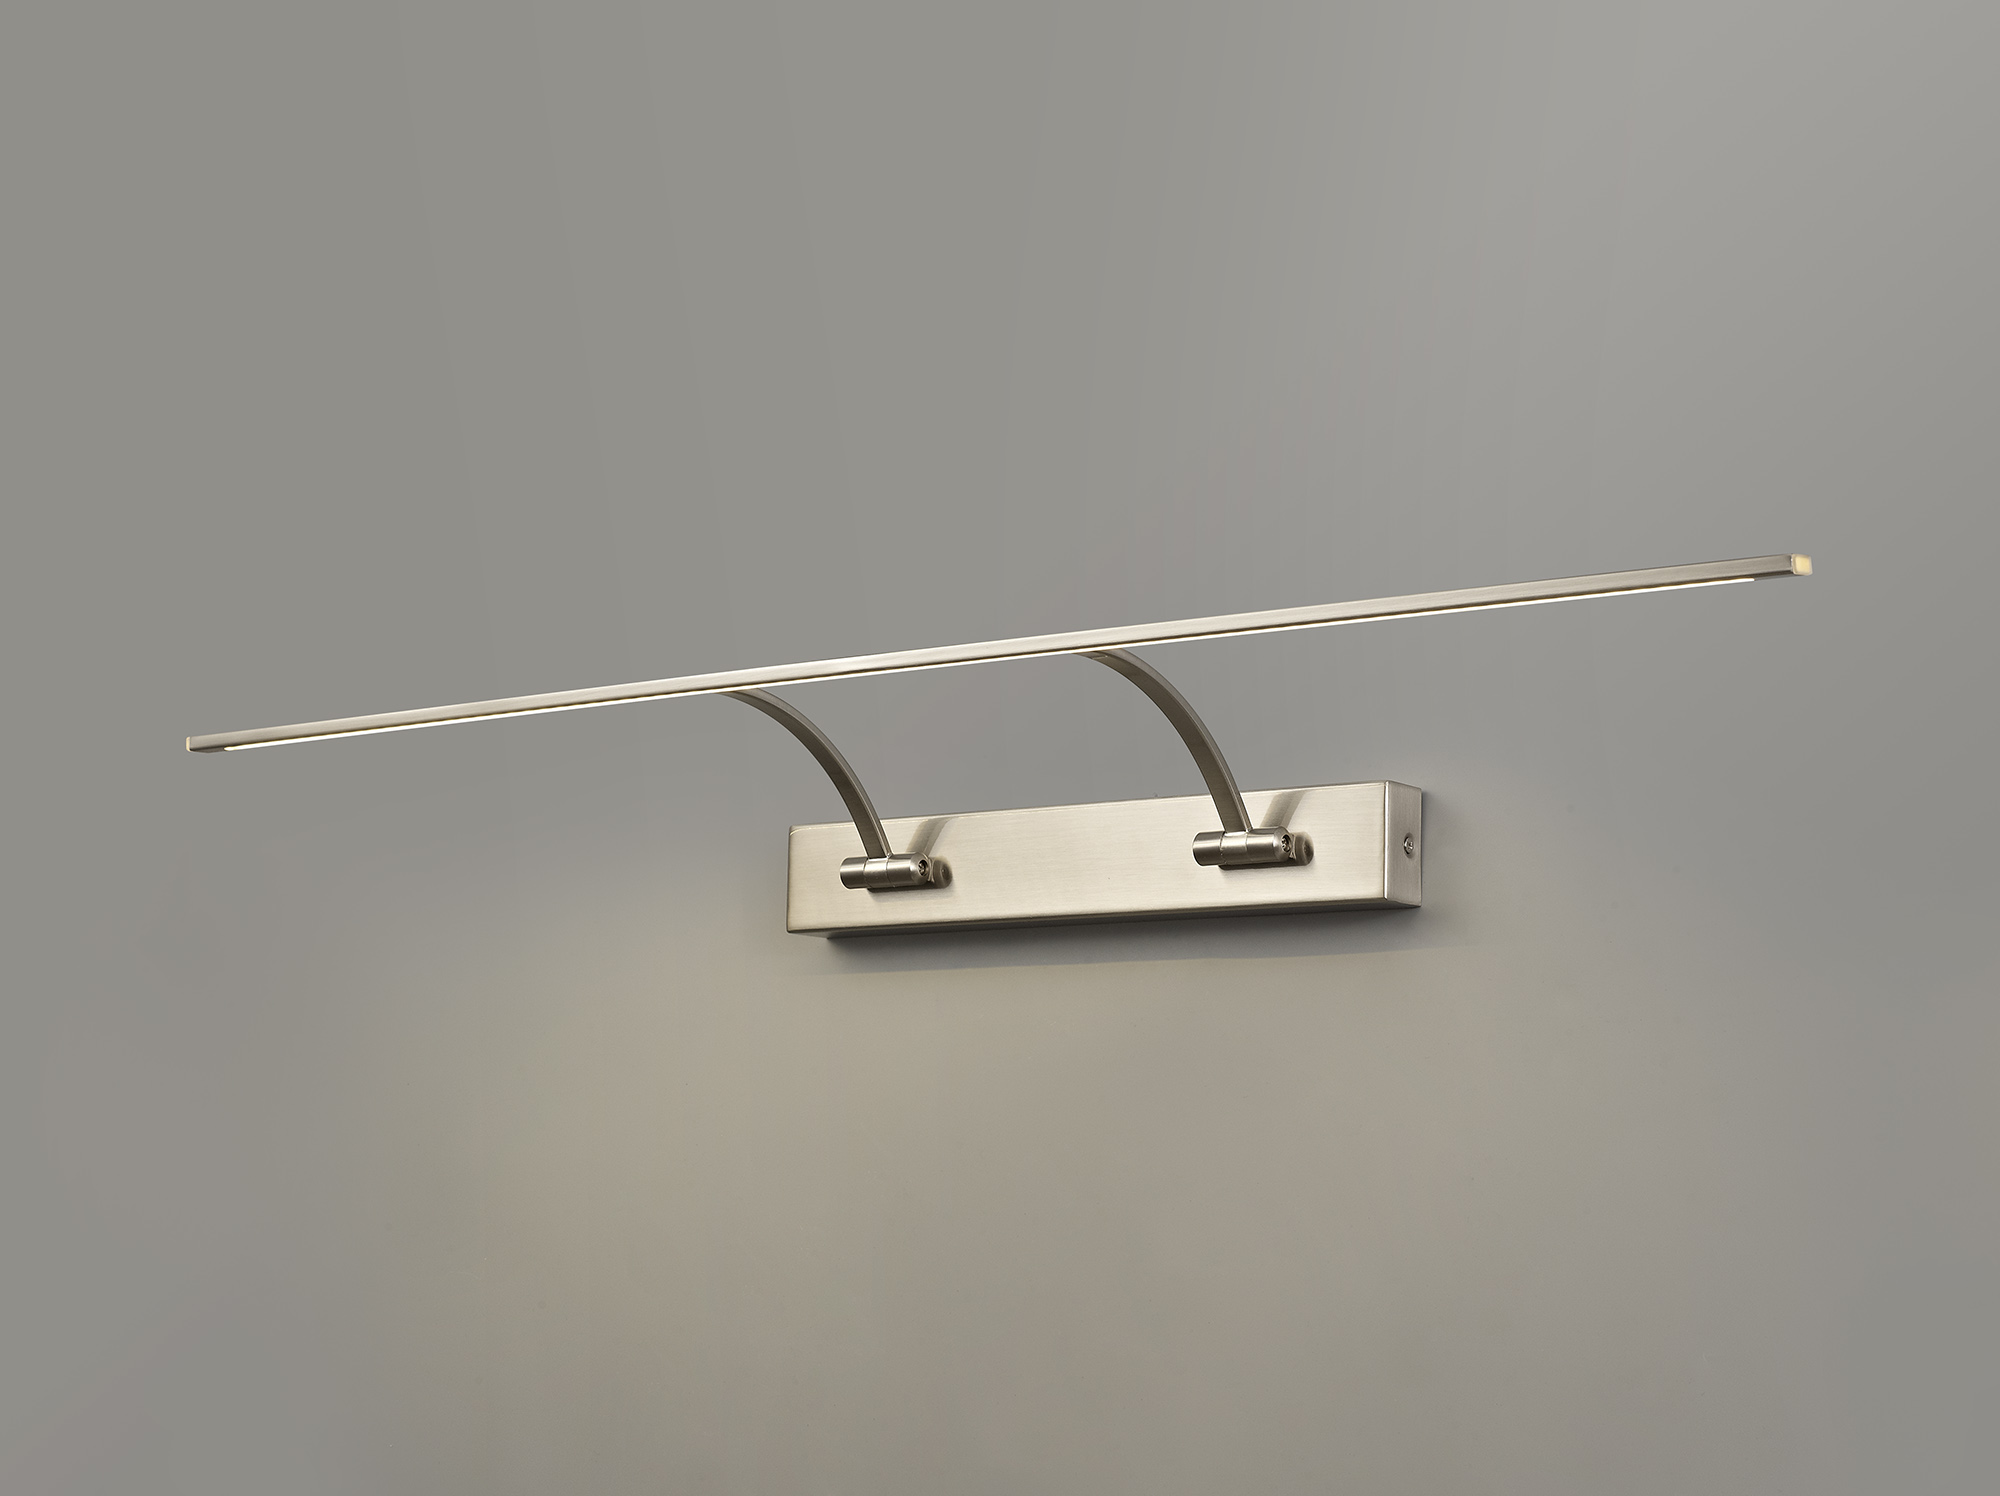 Large 2 Arm Wall Lamp/Picture Light, 1 x 16W LED, 3000K, 1200lm, 3yrs Warranty